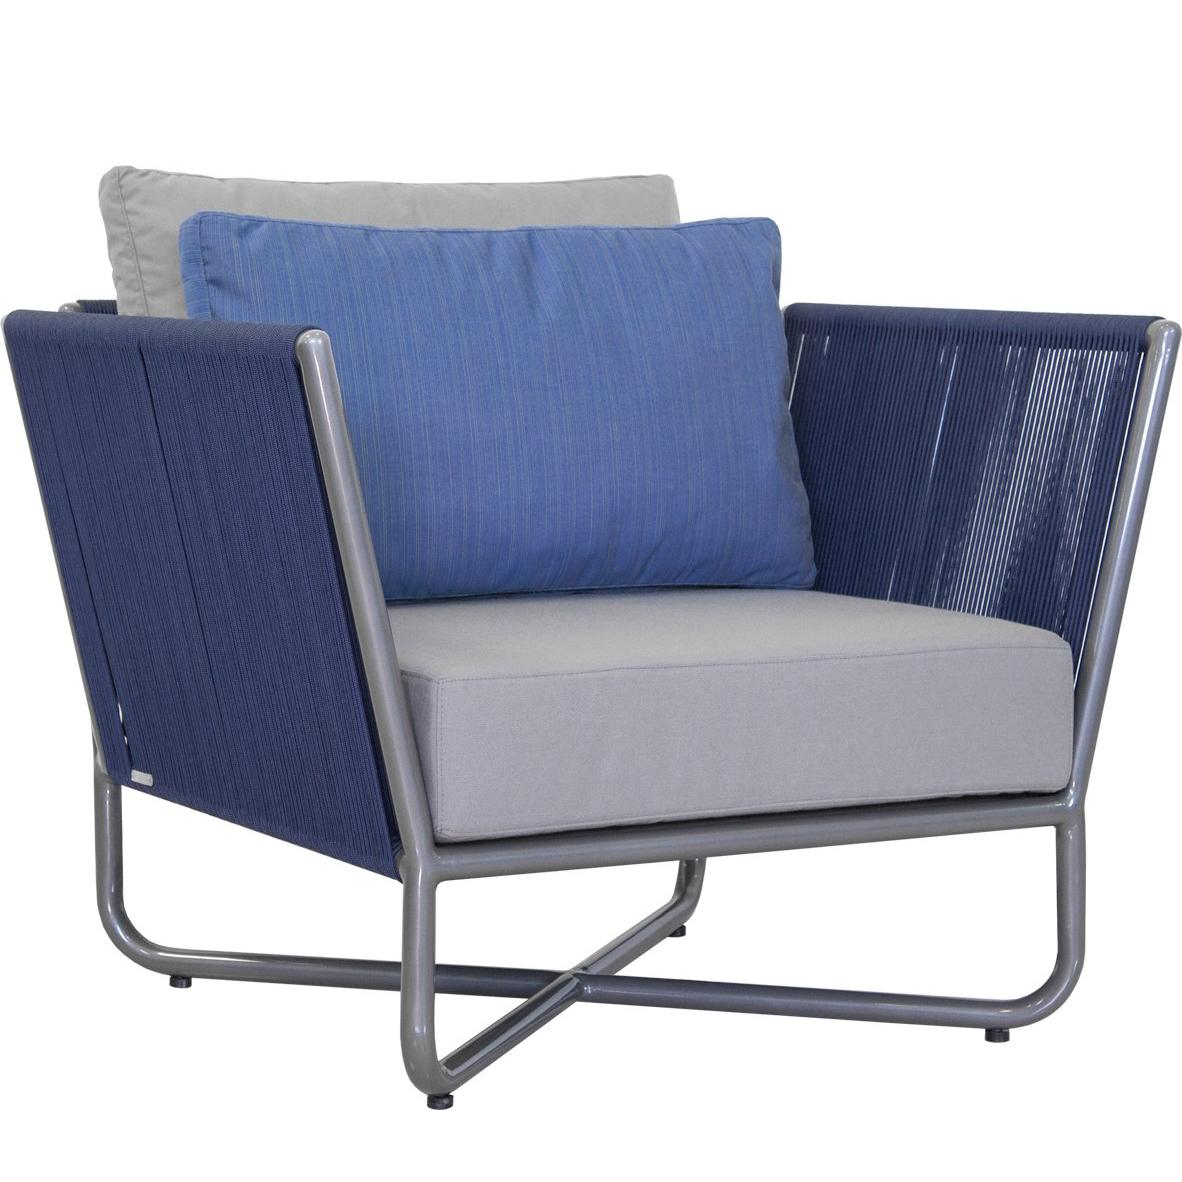 Minimal And Modern Style Armchair, Metal With Nautical Rope Pattern